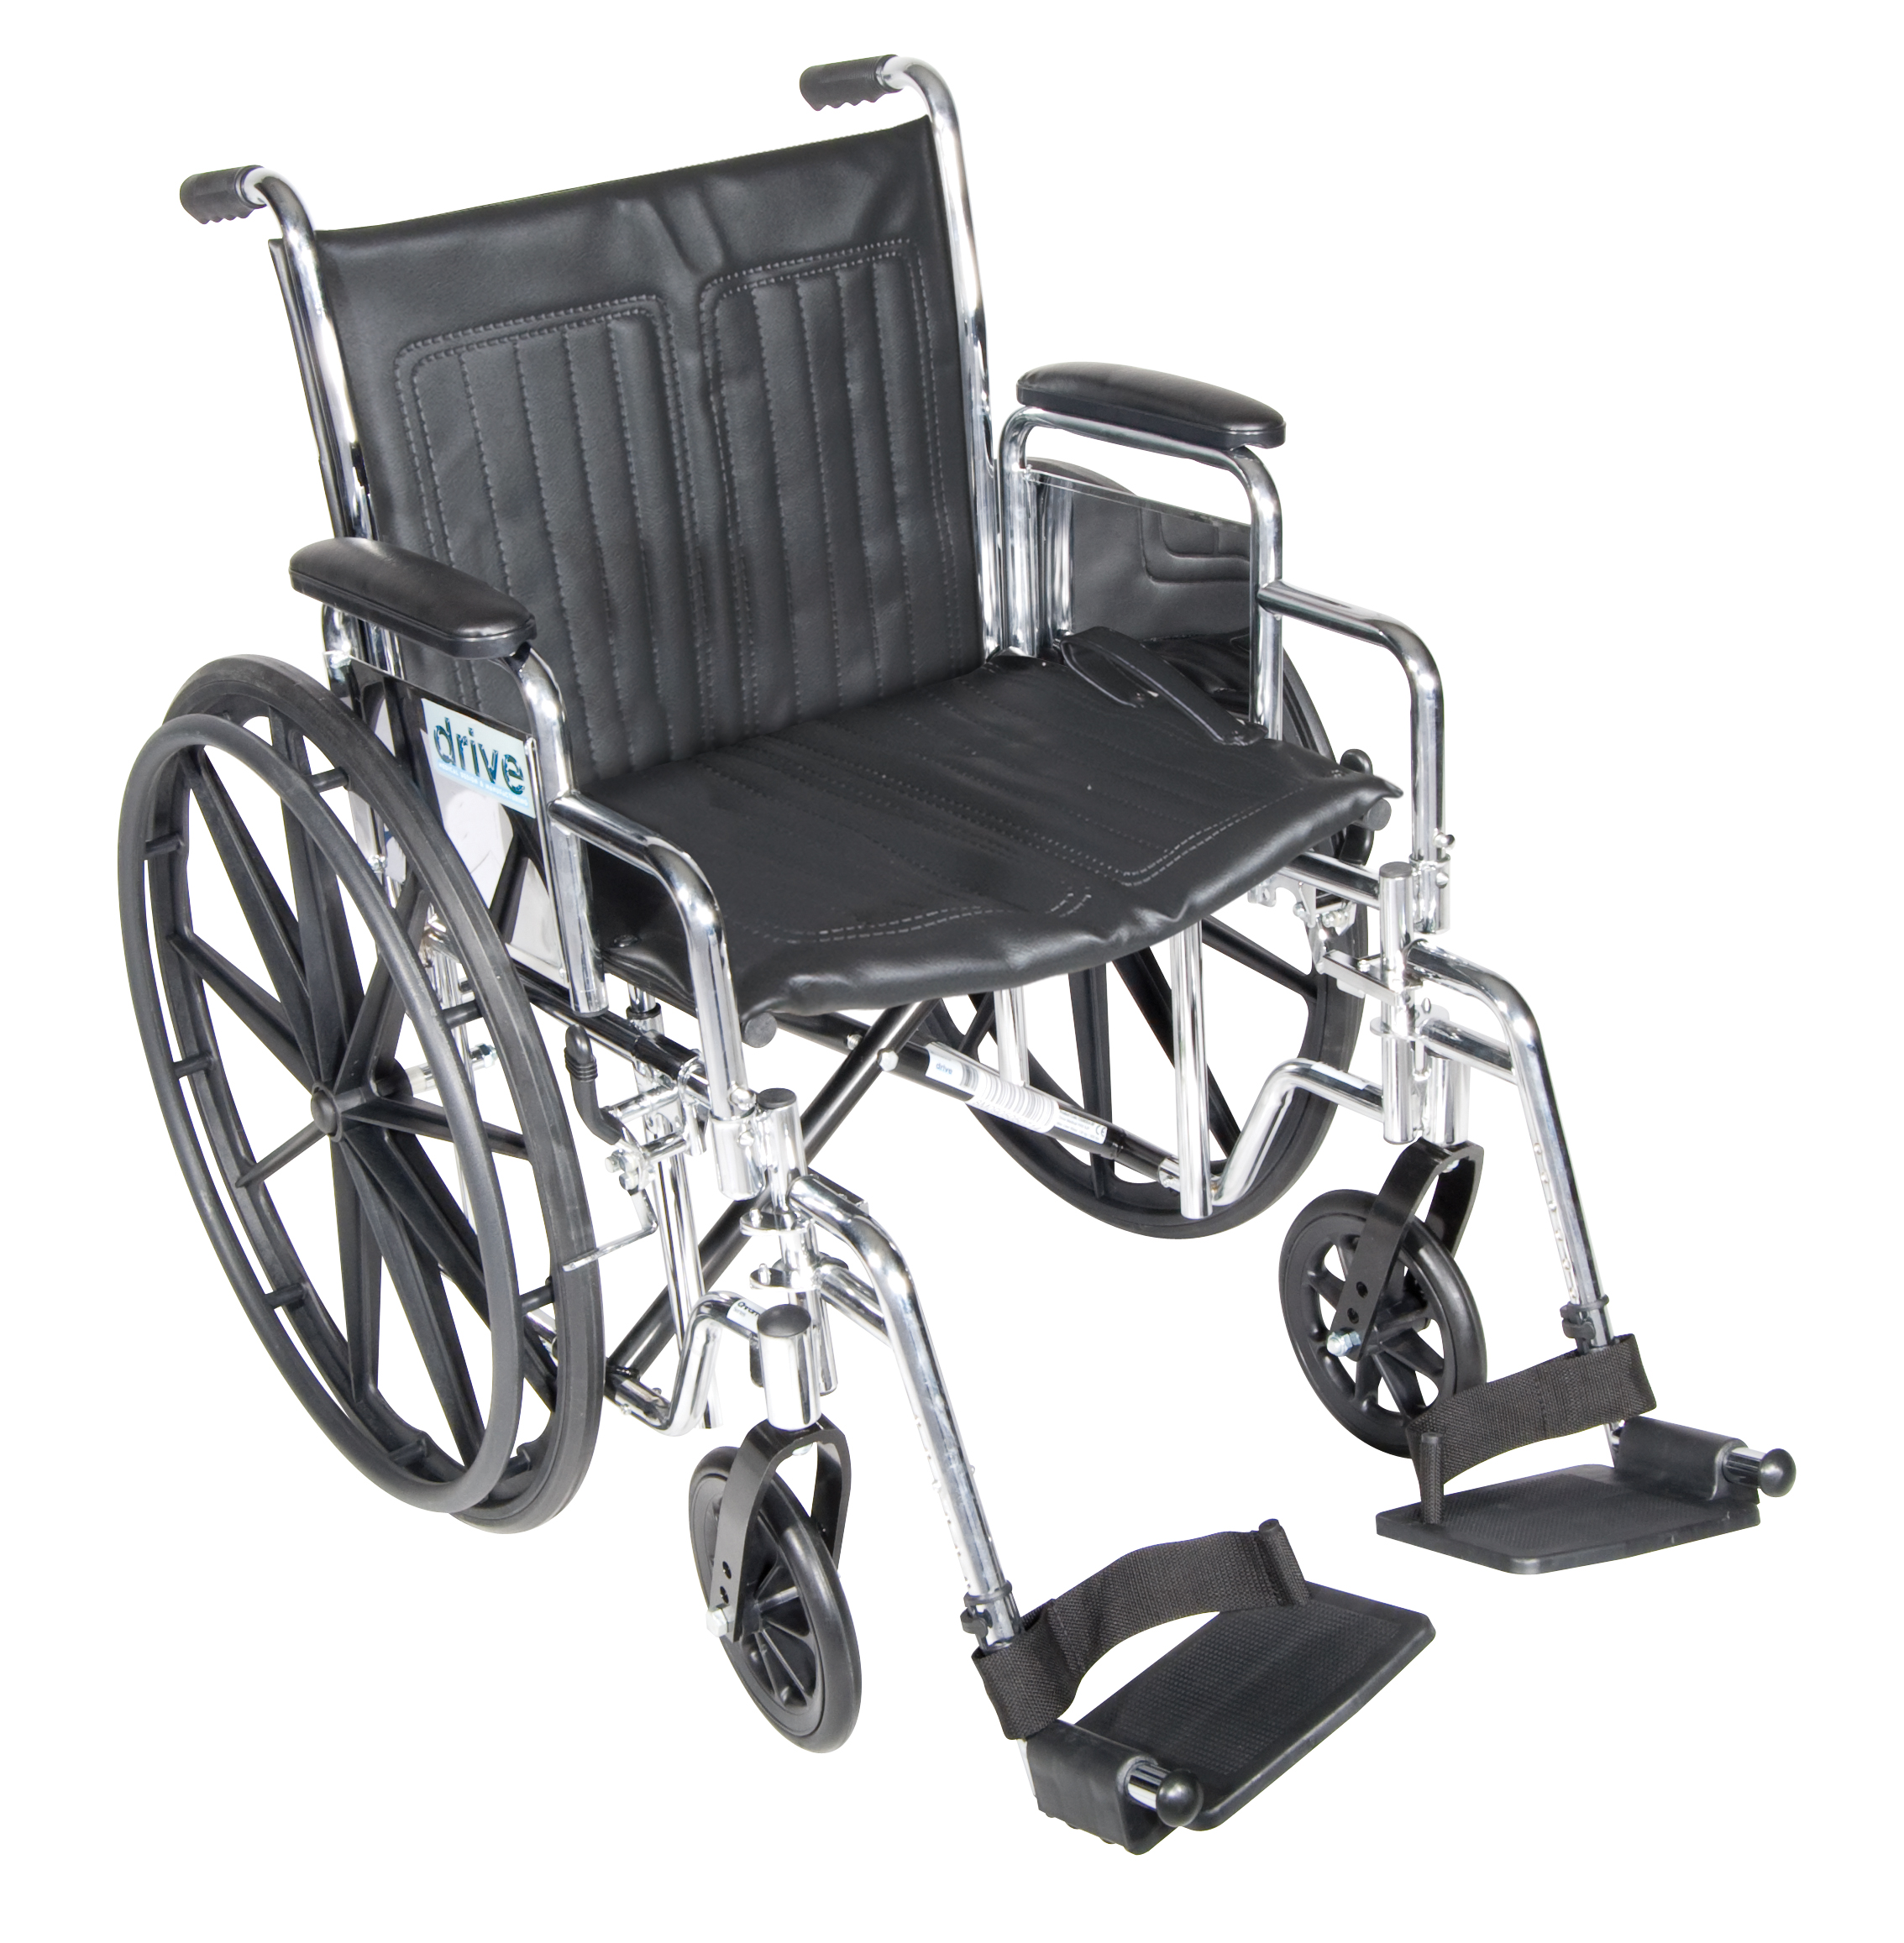 Drive Chrome Sport Wheelchair with Various Arm Styles and Front Rigging Options